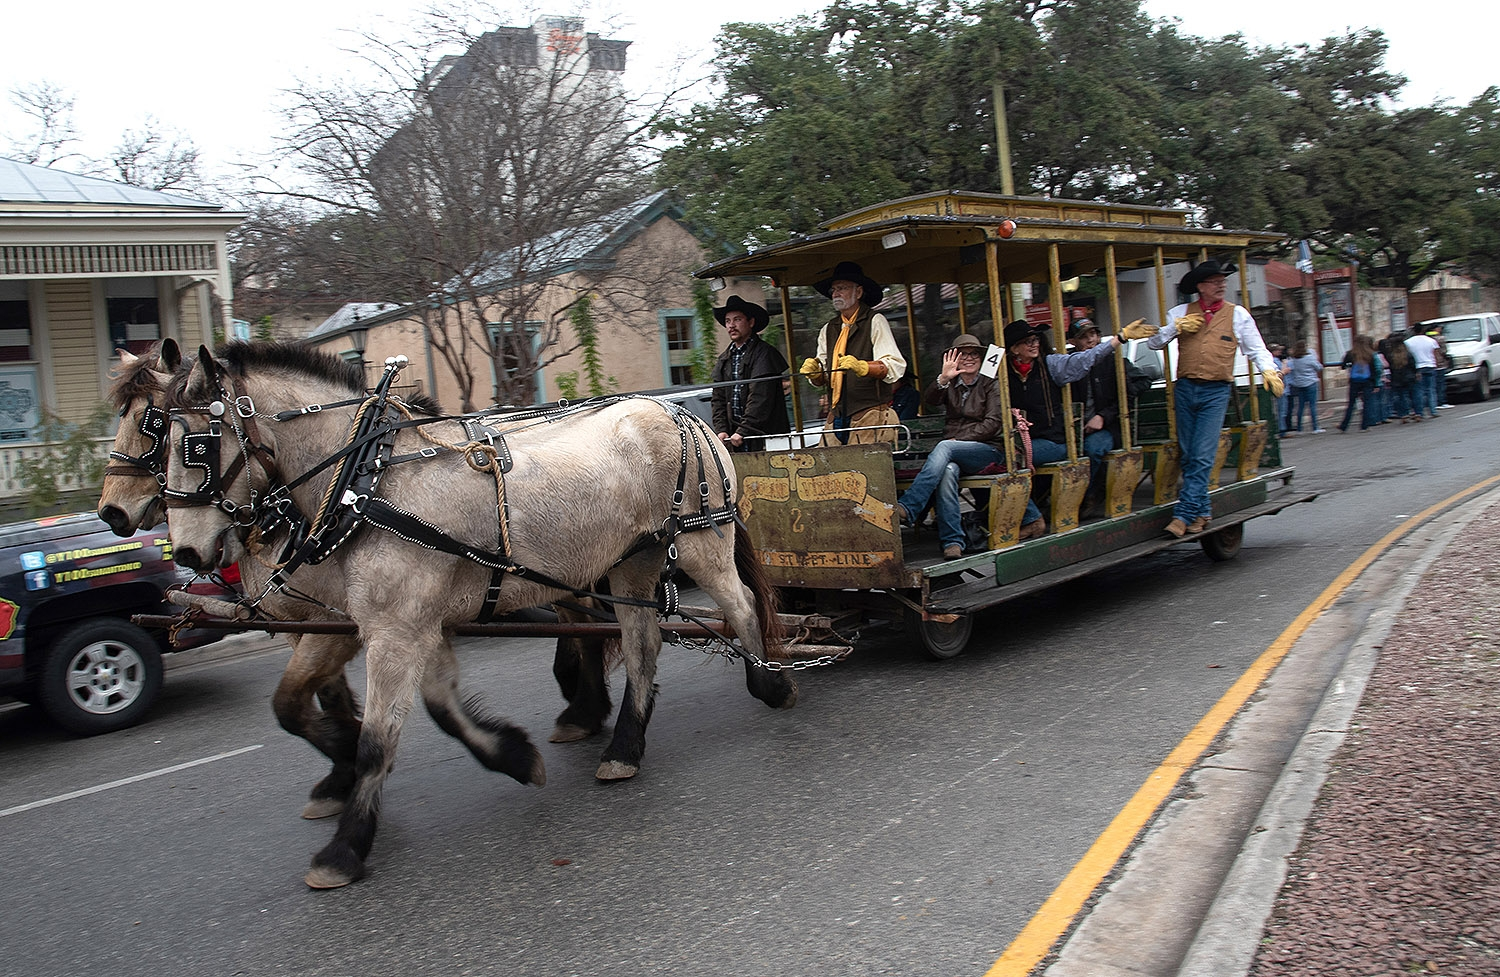 Participants on the Buggy Barn Museum wagon wave to bystanders after the Western Heritage Parade and Cattle Drive Feb. 2. <em><b>V. Finster | Heron</b></em>